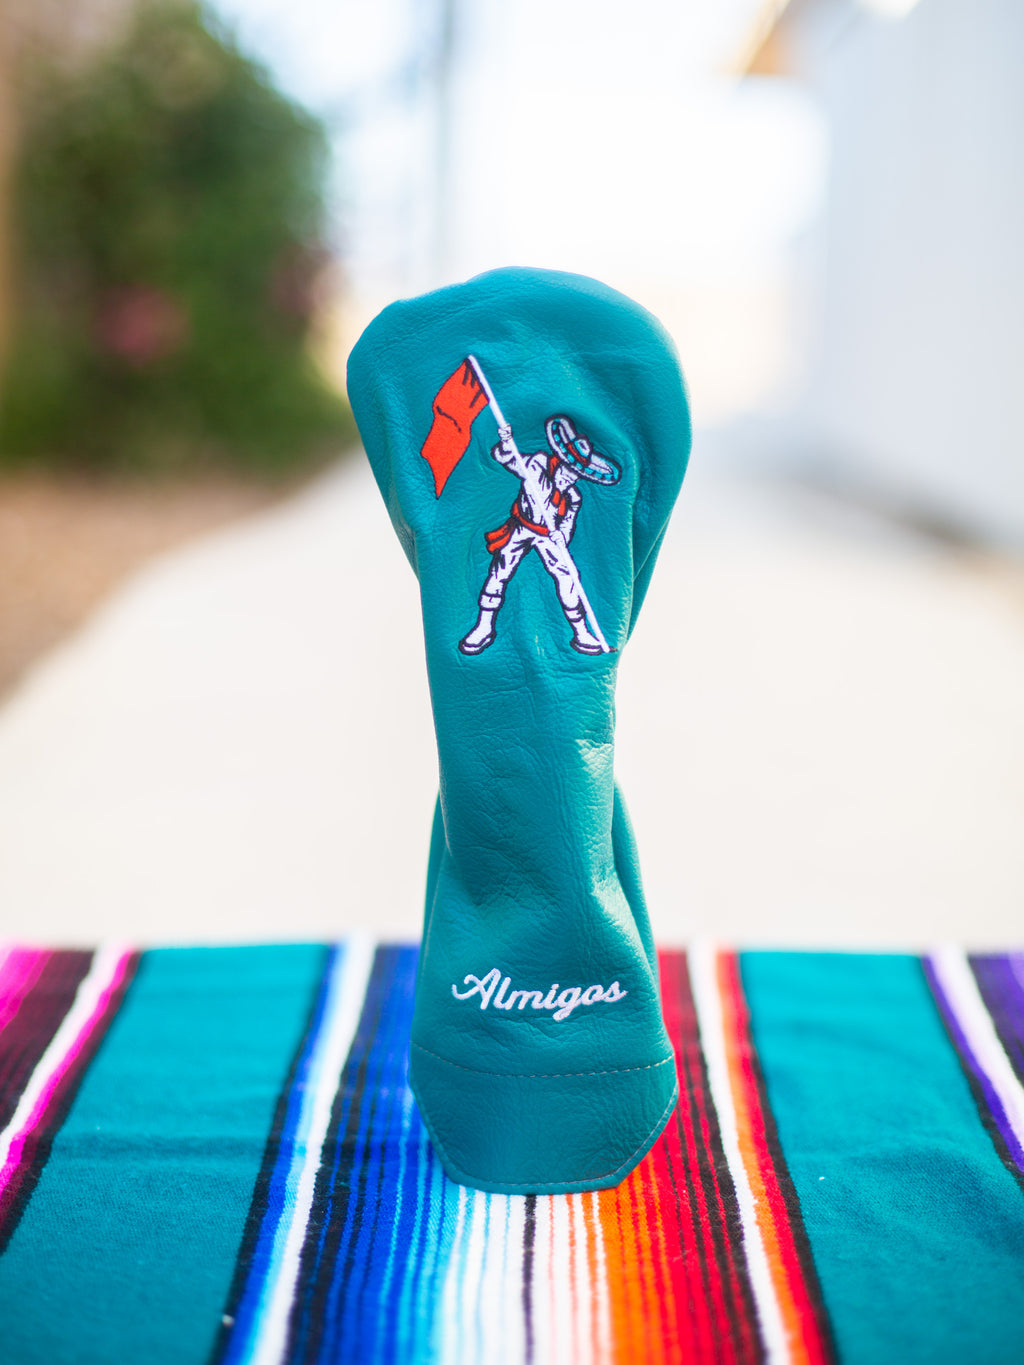 Almigos Jimador Head Cover